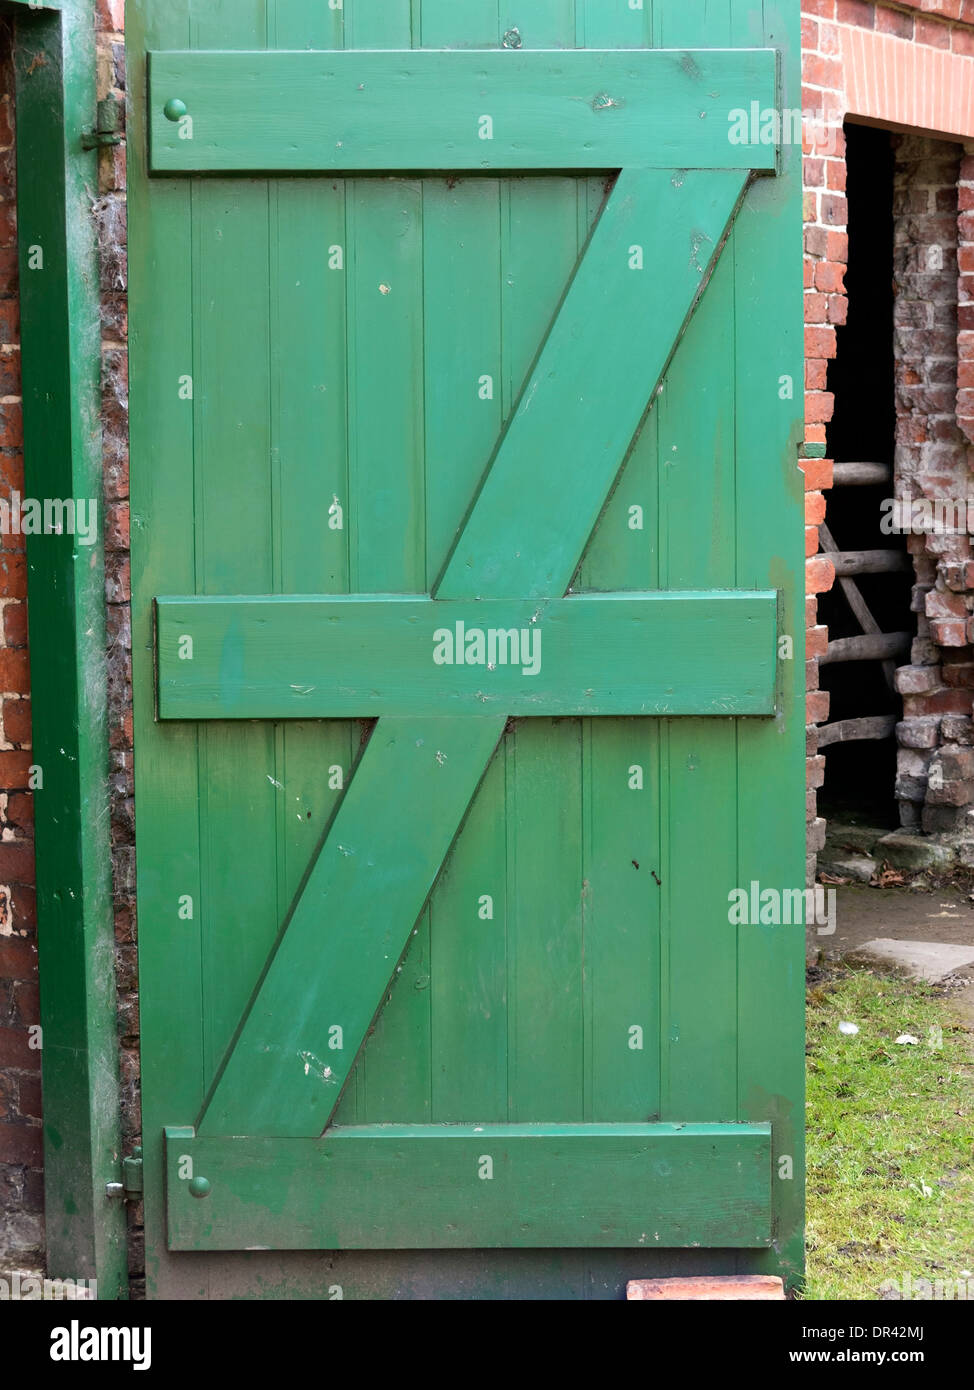 Green painted wooden door with letter 'Z' shaped battens - Stock Image